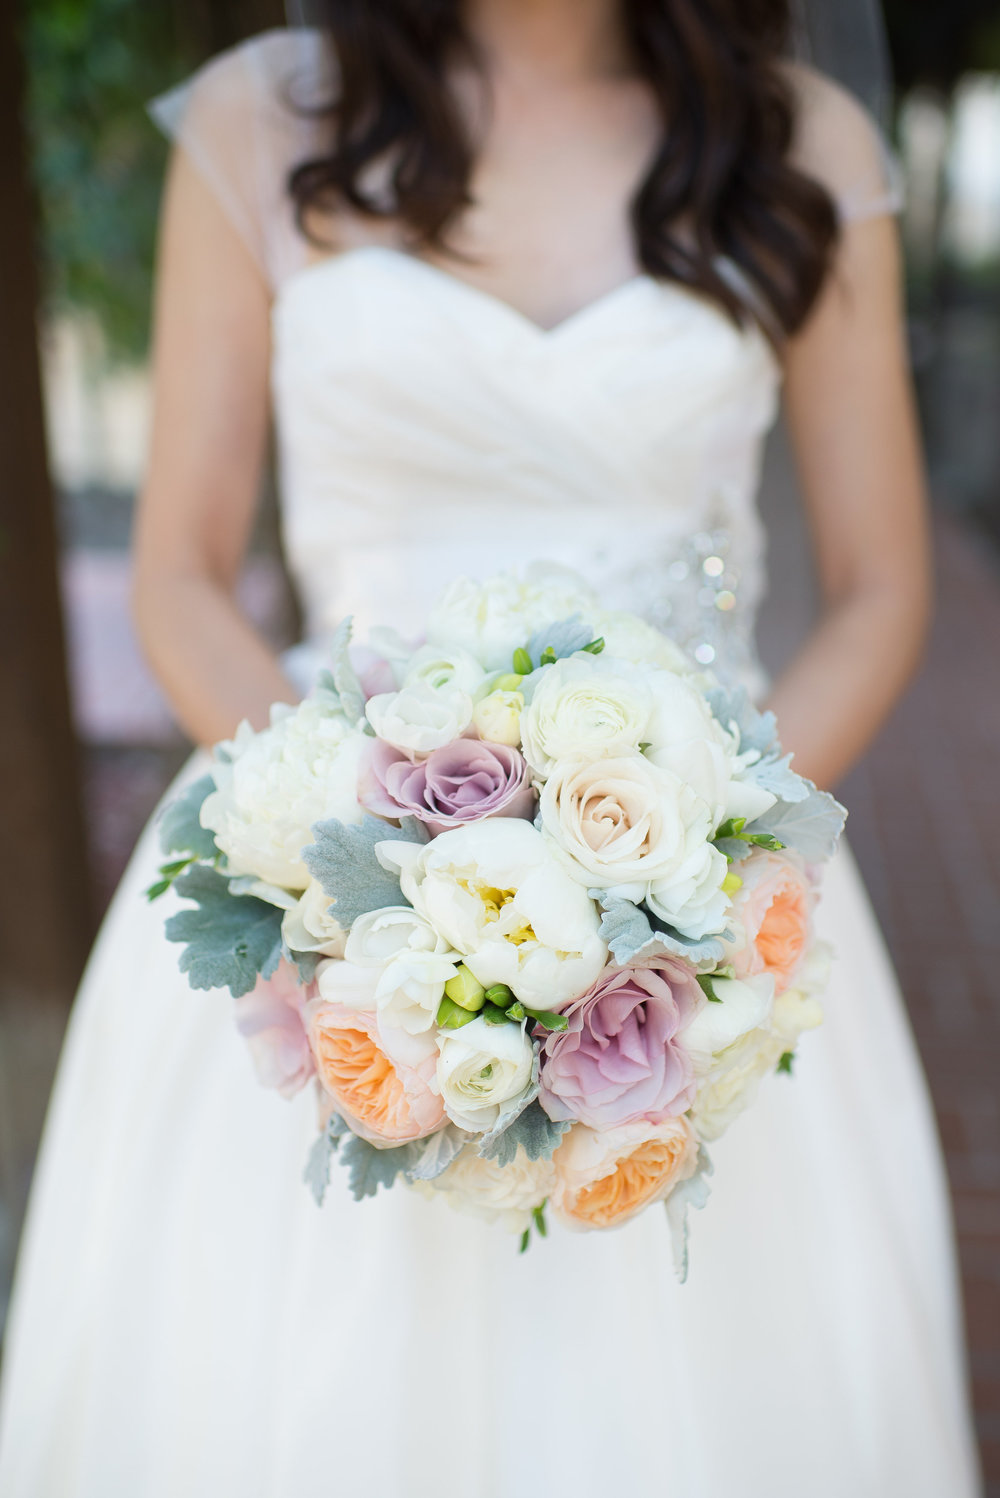 "Peachers carried a bouquet of peach, blush and ivory flowers: white peonies, peach garden rose "" juliet"" , white freesia, and white ranunculus with dusty miller."